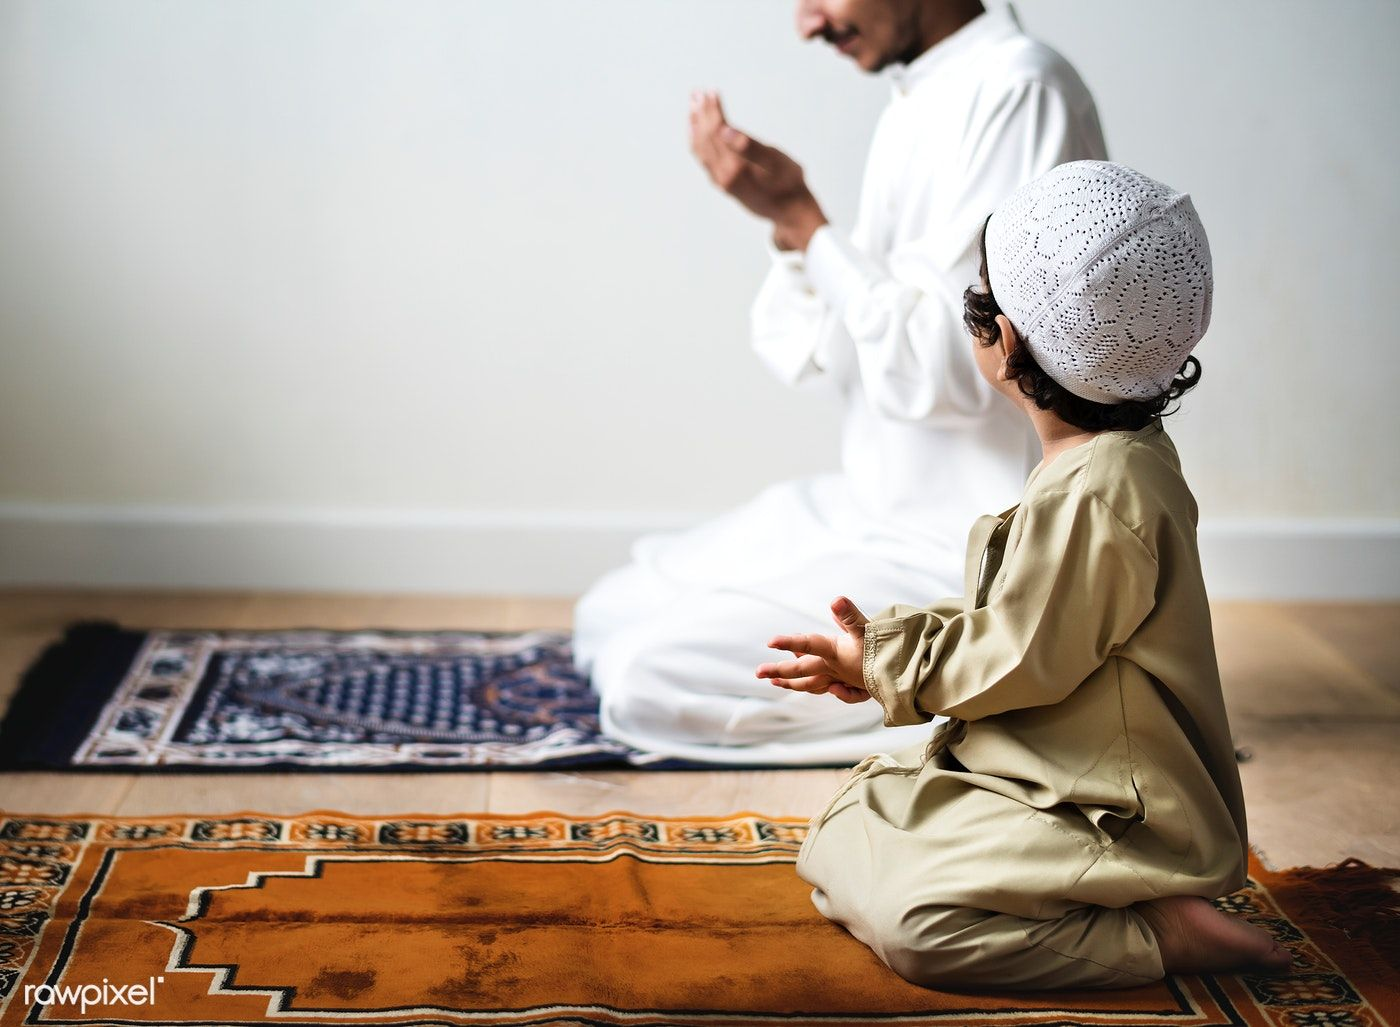 Download premium image of little boy praying alongside his father during #quotesaboutlittleboys